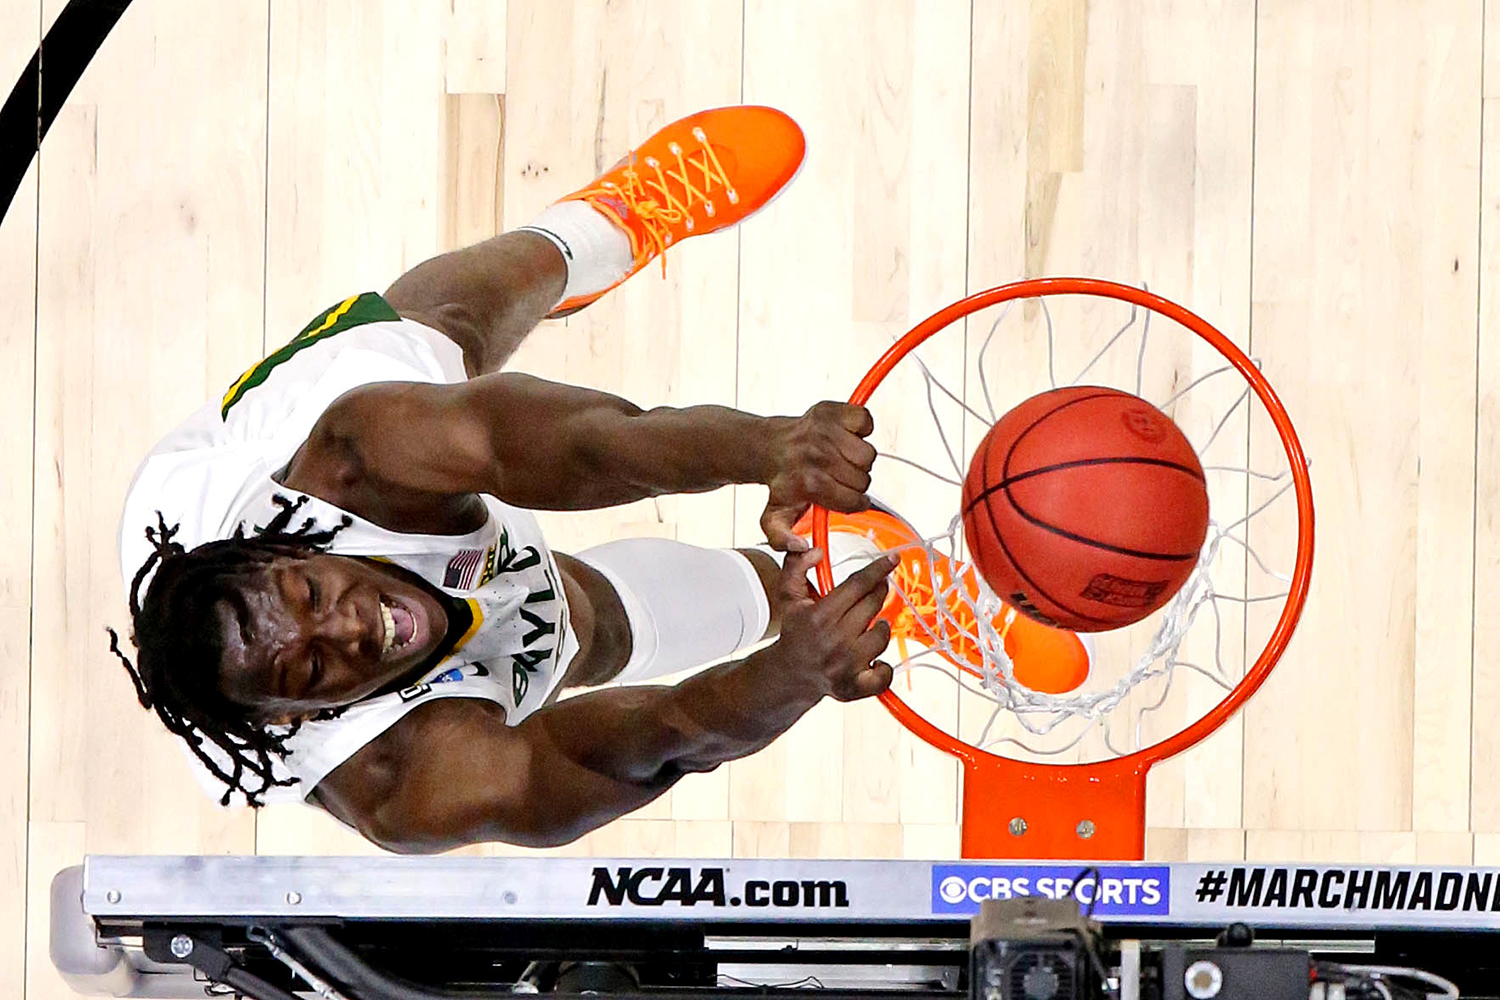 Baylor University forward Jonathan Tchamwa Tchatchoua dunks a ball during the first half of the Elite Eight NCAA Tournament game against the Arkansas Razorbacks at Lucas Oil Stadium in Indianapolis on March 29. Robert Deutsch/USA TODAY Sports via Reuters